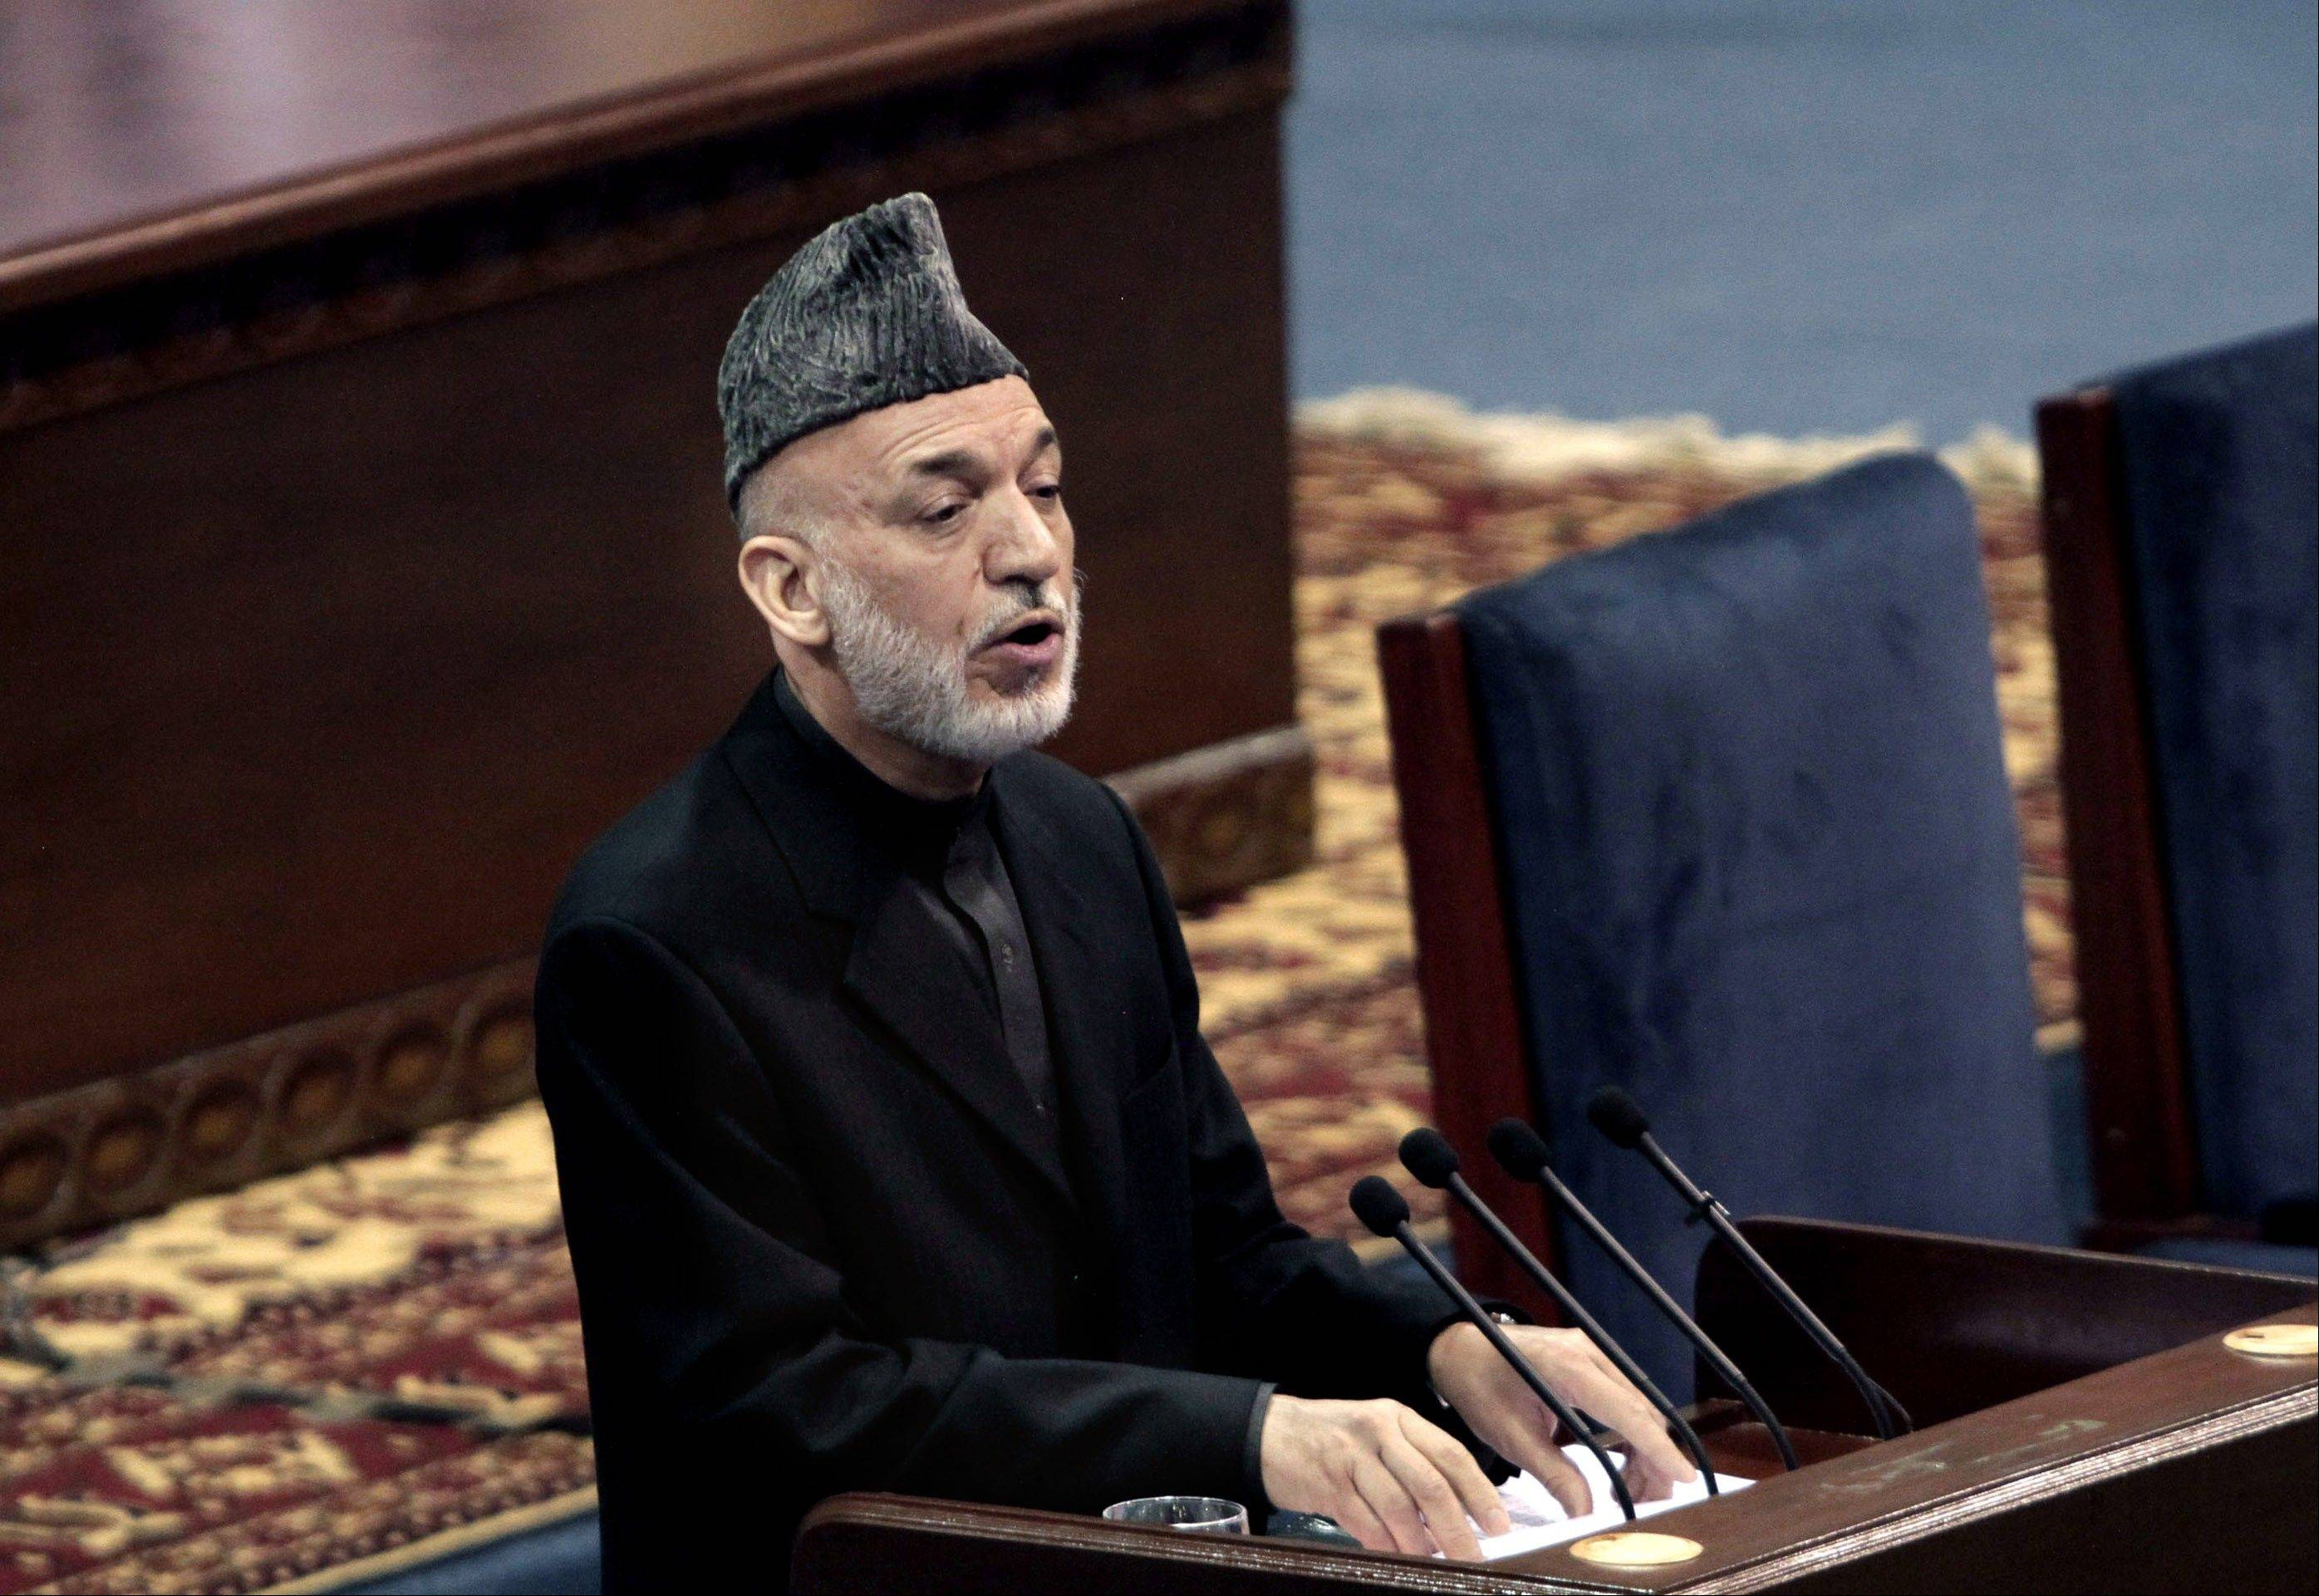 Afghan President Hamid Karzai urged tribal elders Thursday to support a security deal with the United States, but in a surprising about-face said he would defer the signing of the agreement to the winner of next year's presidential elections, which he is barred from contesting.